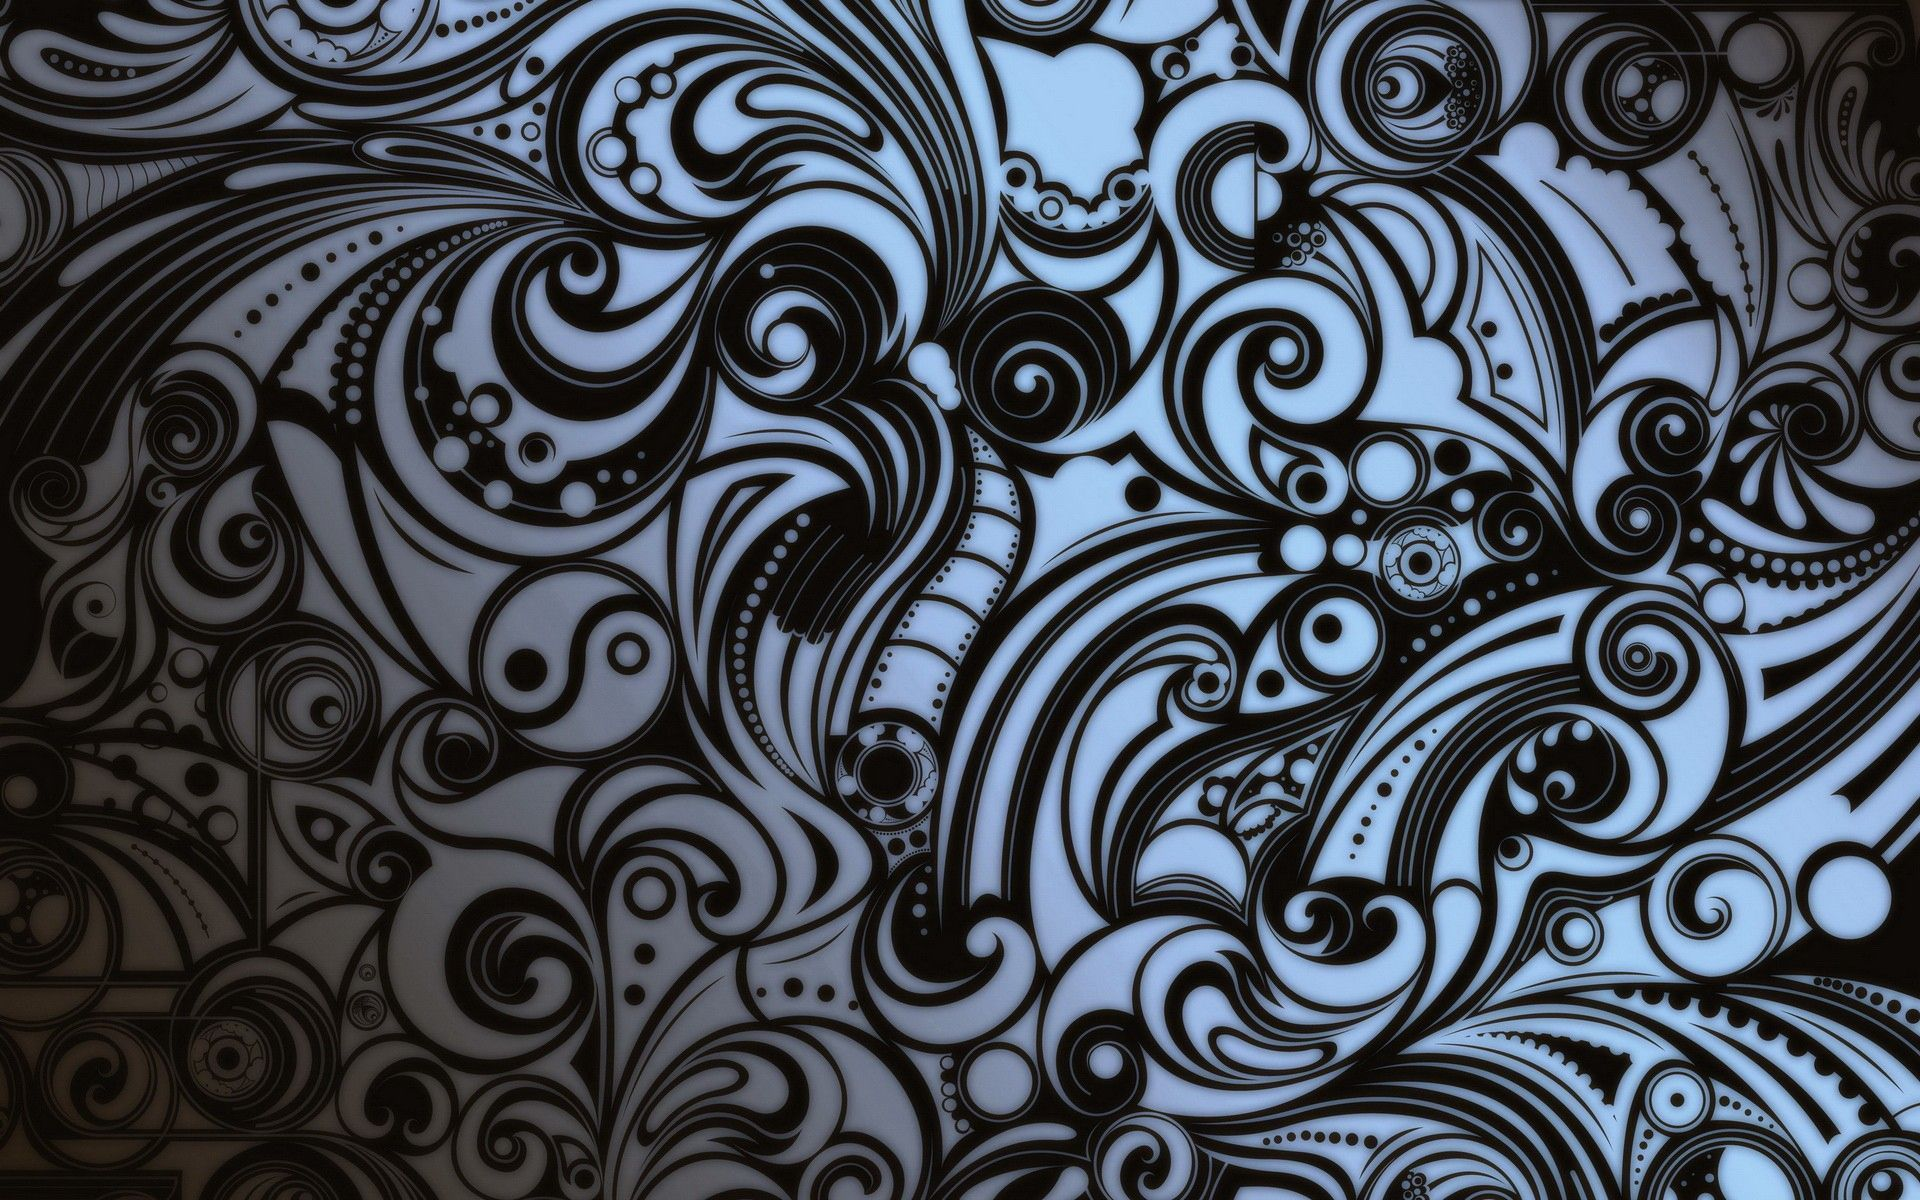 1920x1200 - Cool Tribal Backgrounds 1